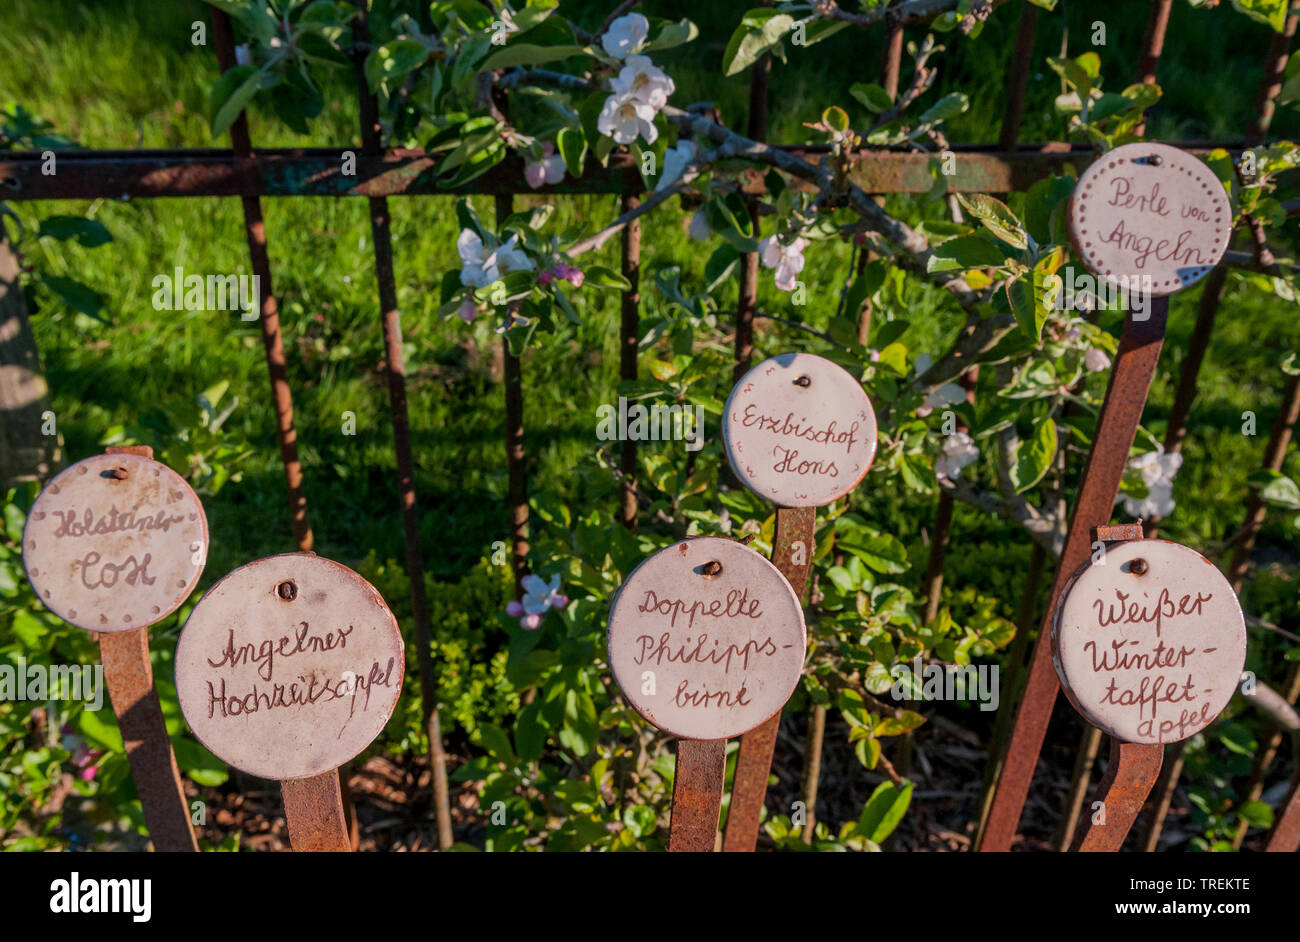 labels of old fruit tree cultivars, Germany Stock Photo